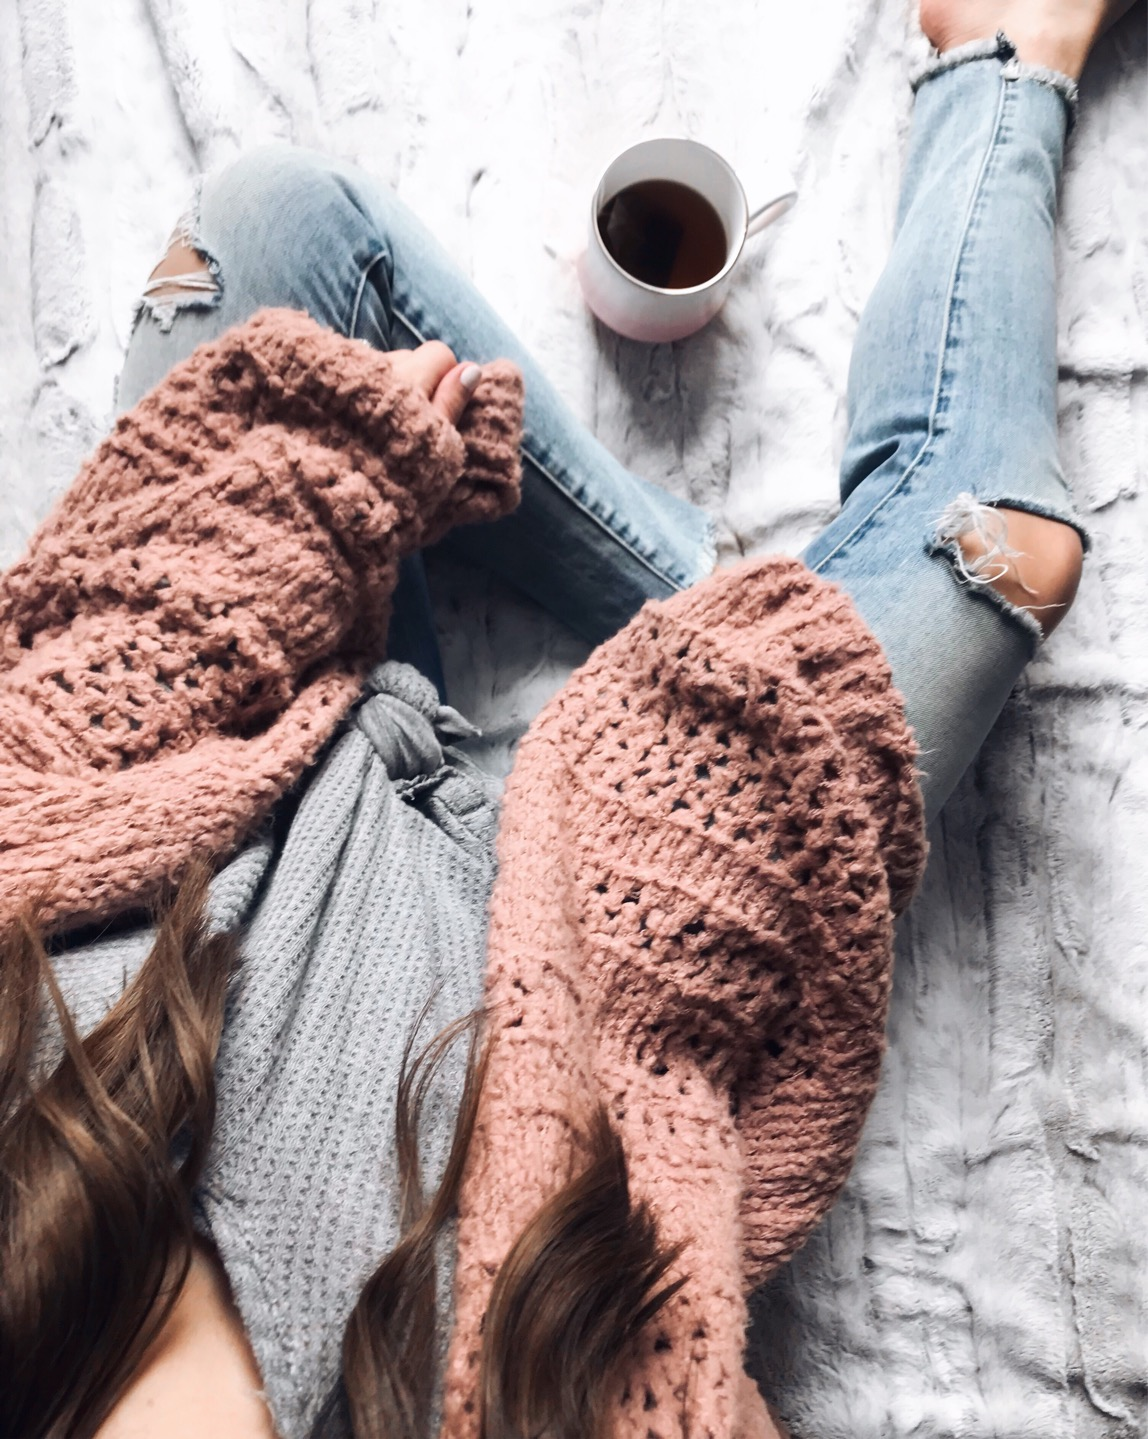 My Outfits On Sale | Pine Barren Beauty | free people outfit, cozy cardigan, distressed denim, fall fashion, flat lay, view from above, cozy vibes